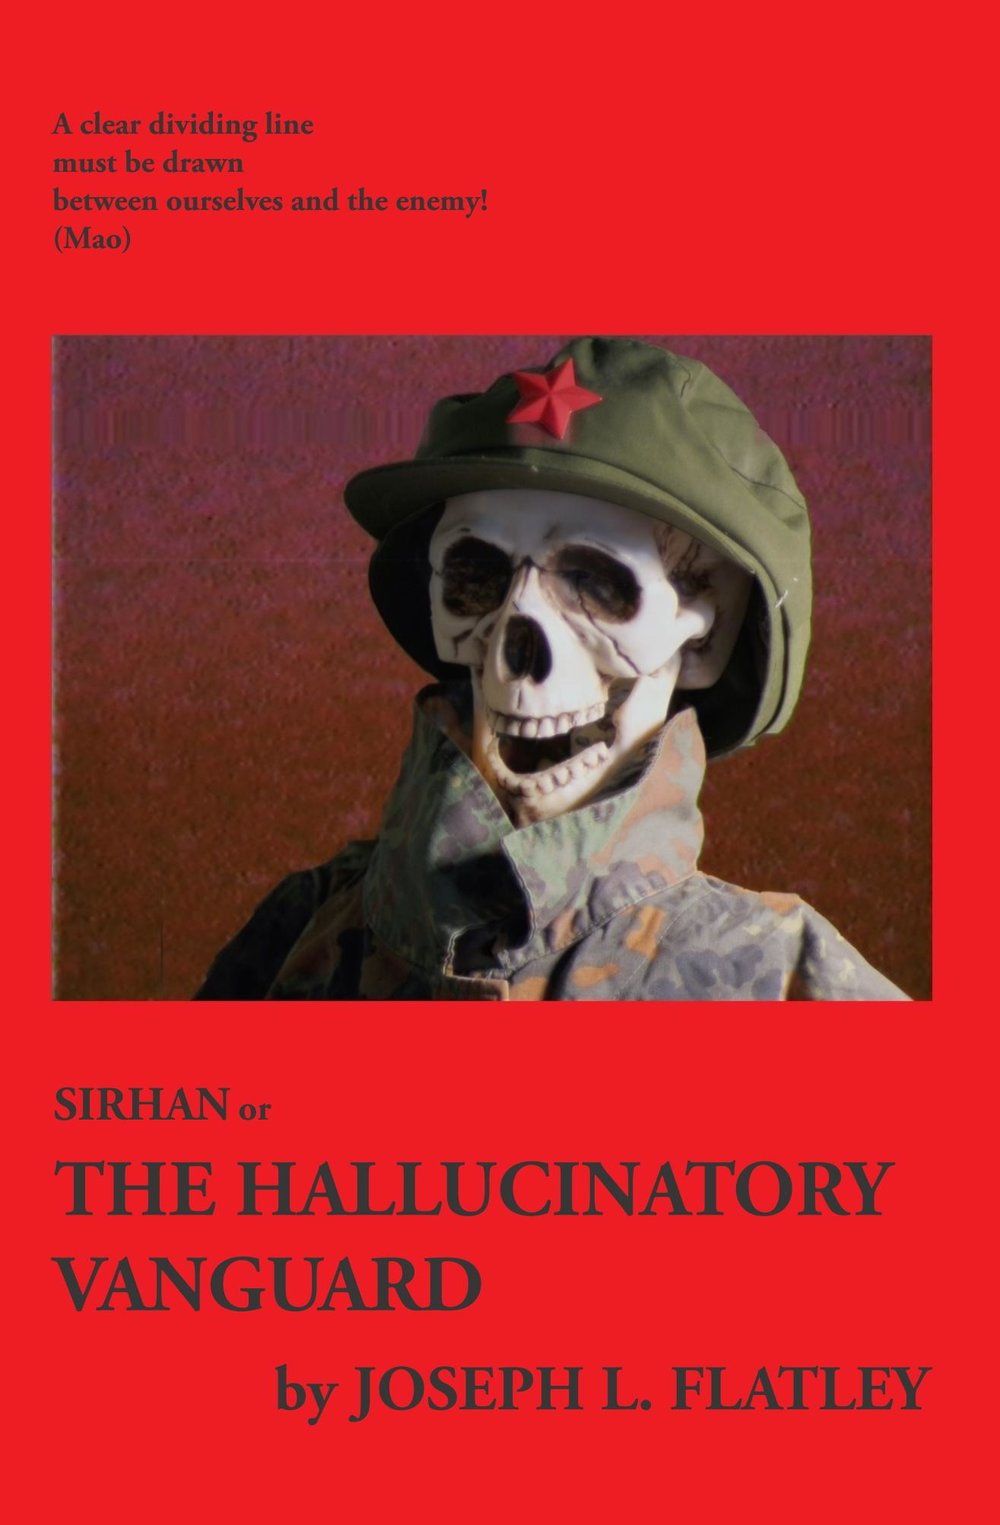 Sirhan: Or, the Hallucinatory Vanguard - Available now from Amazon and wherever fine books are sold.